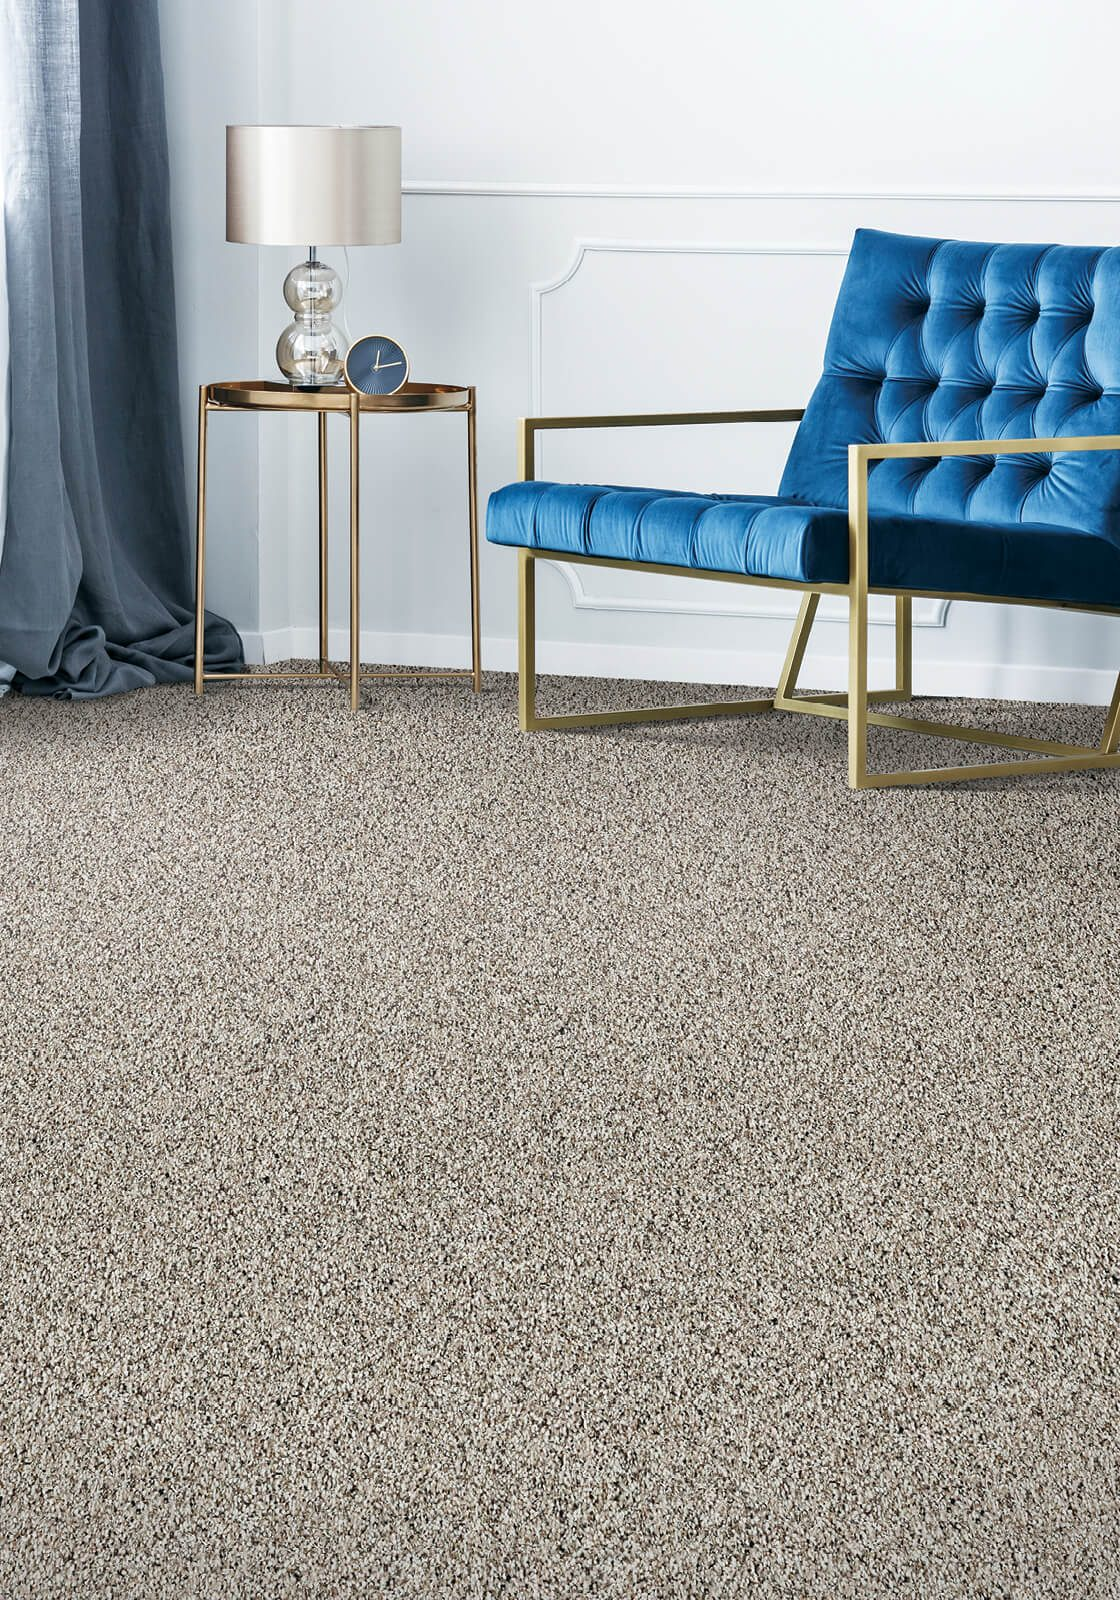 Choose-carpet-for-allergies | The Flooring Place